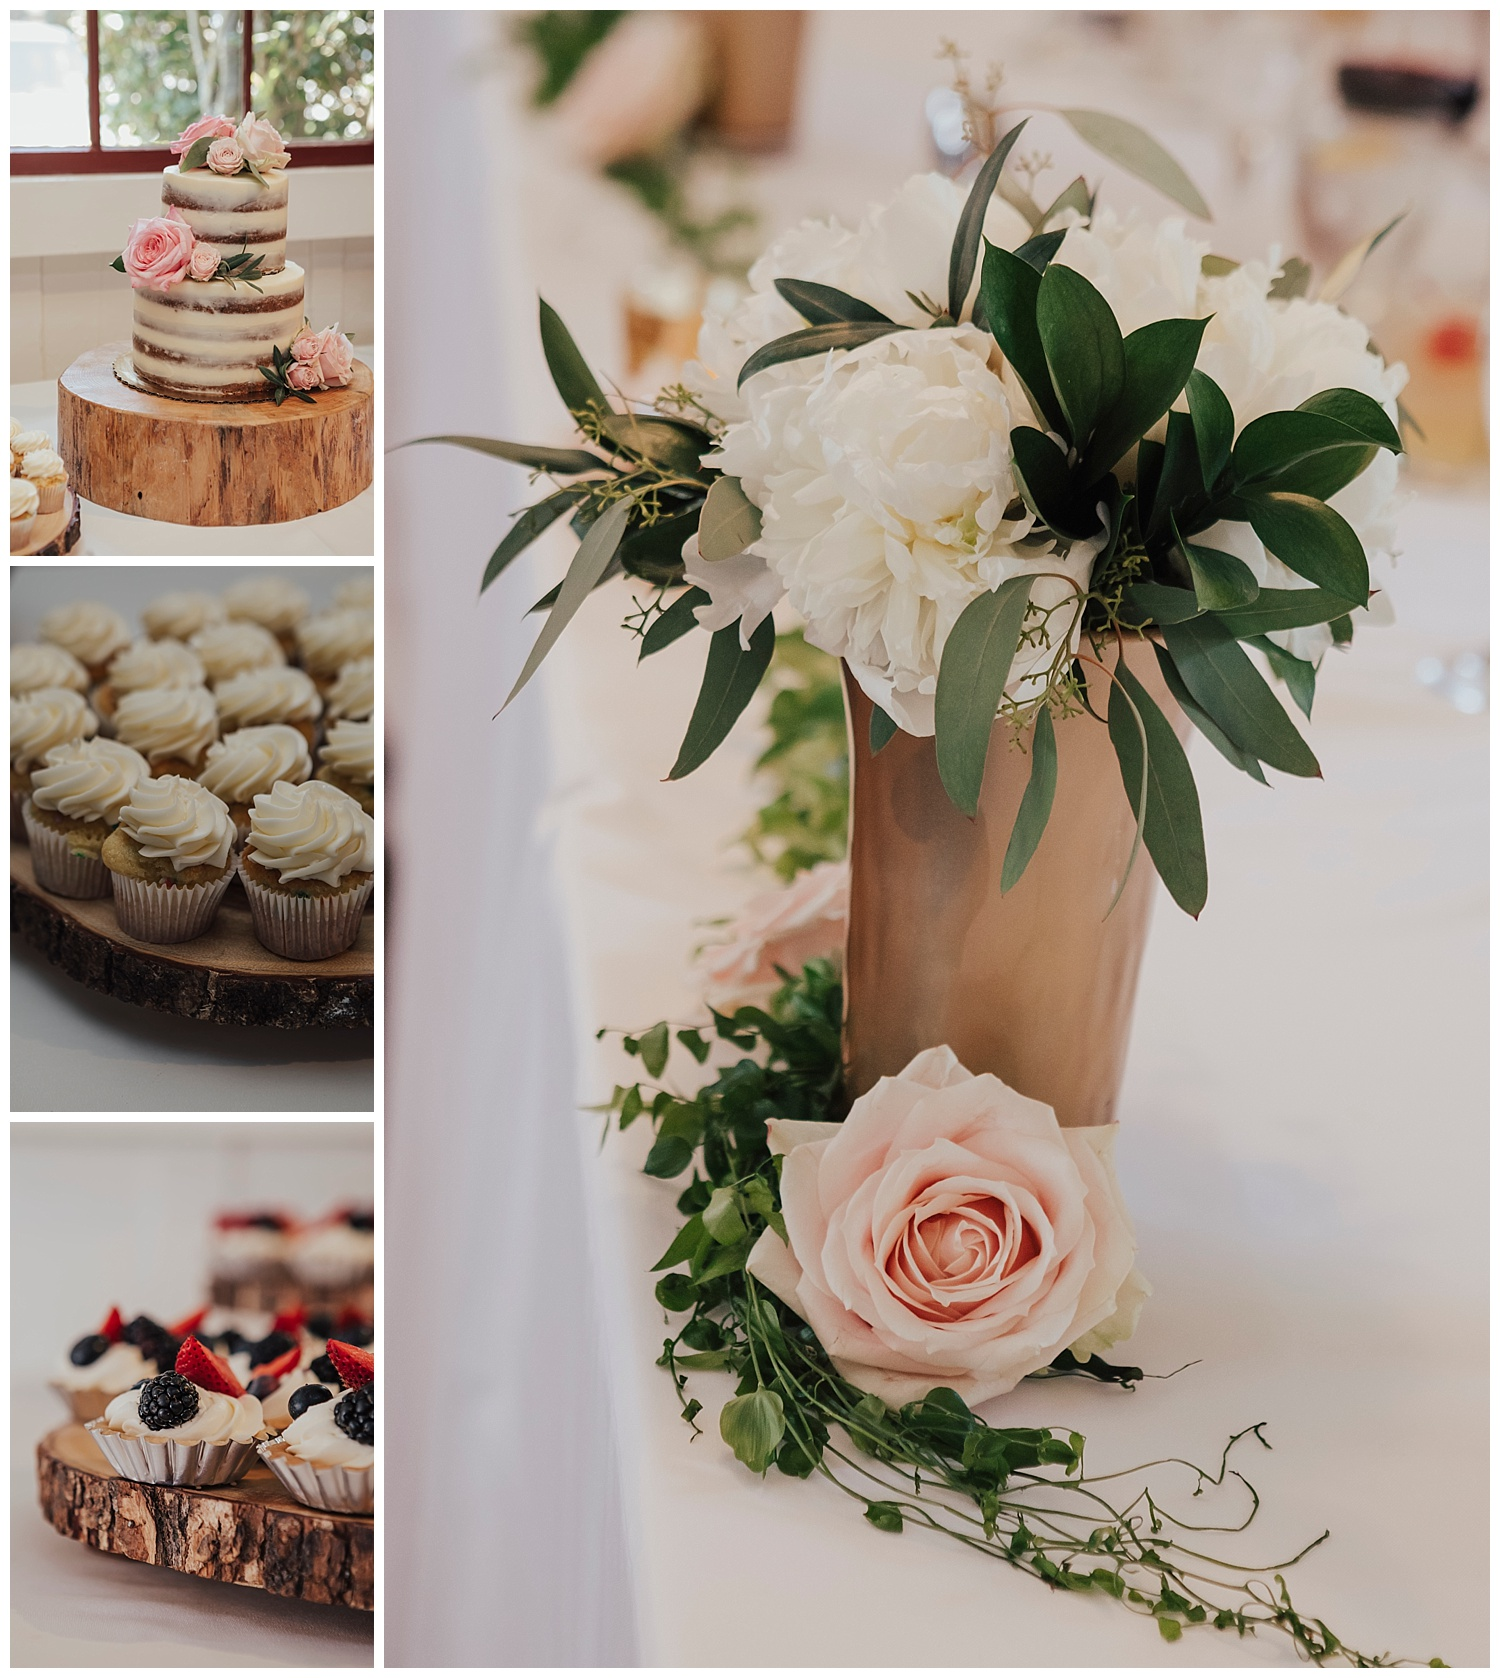 wedding-desserts-mission-ranch-carol-oliva-photography.jpg